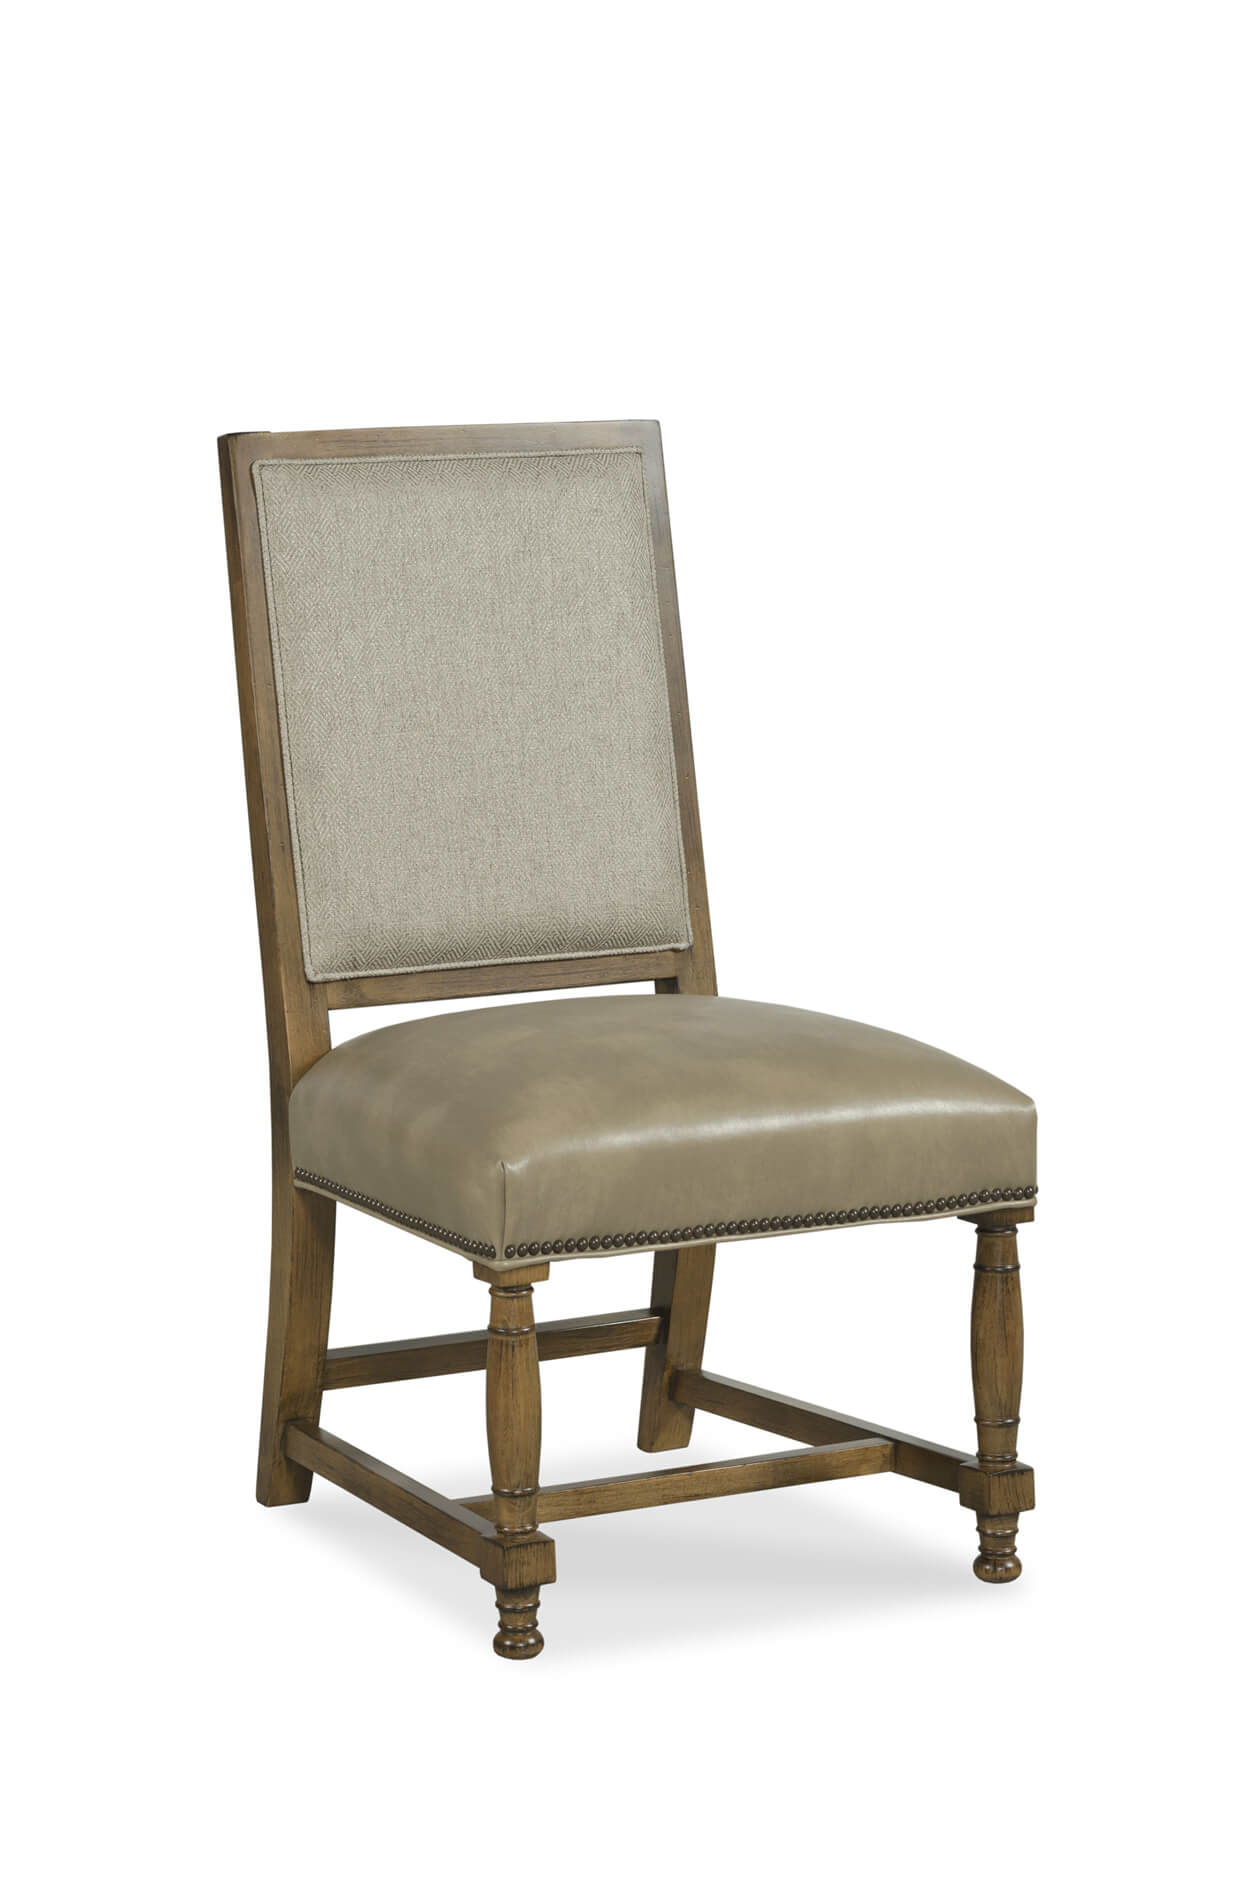 Fairfield's Ramsey Upholstered Dining Chair